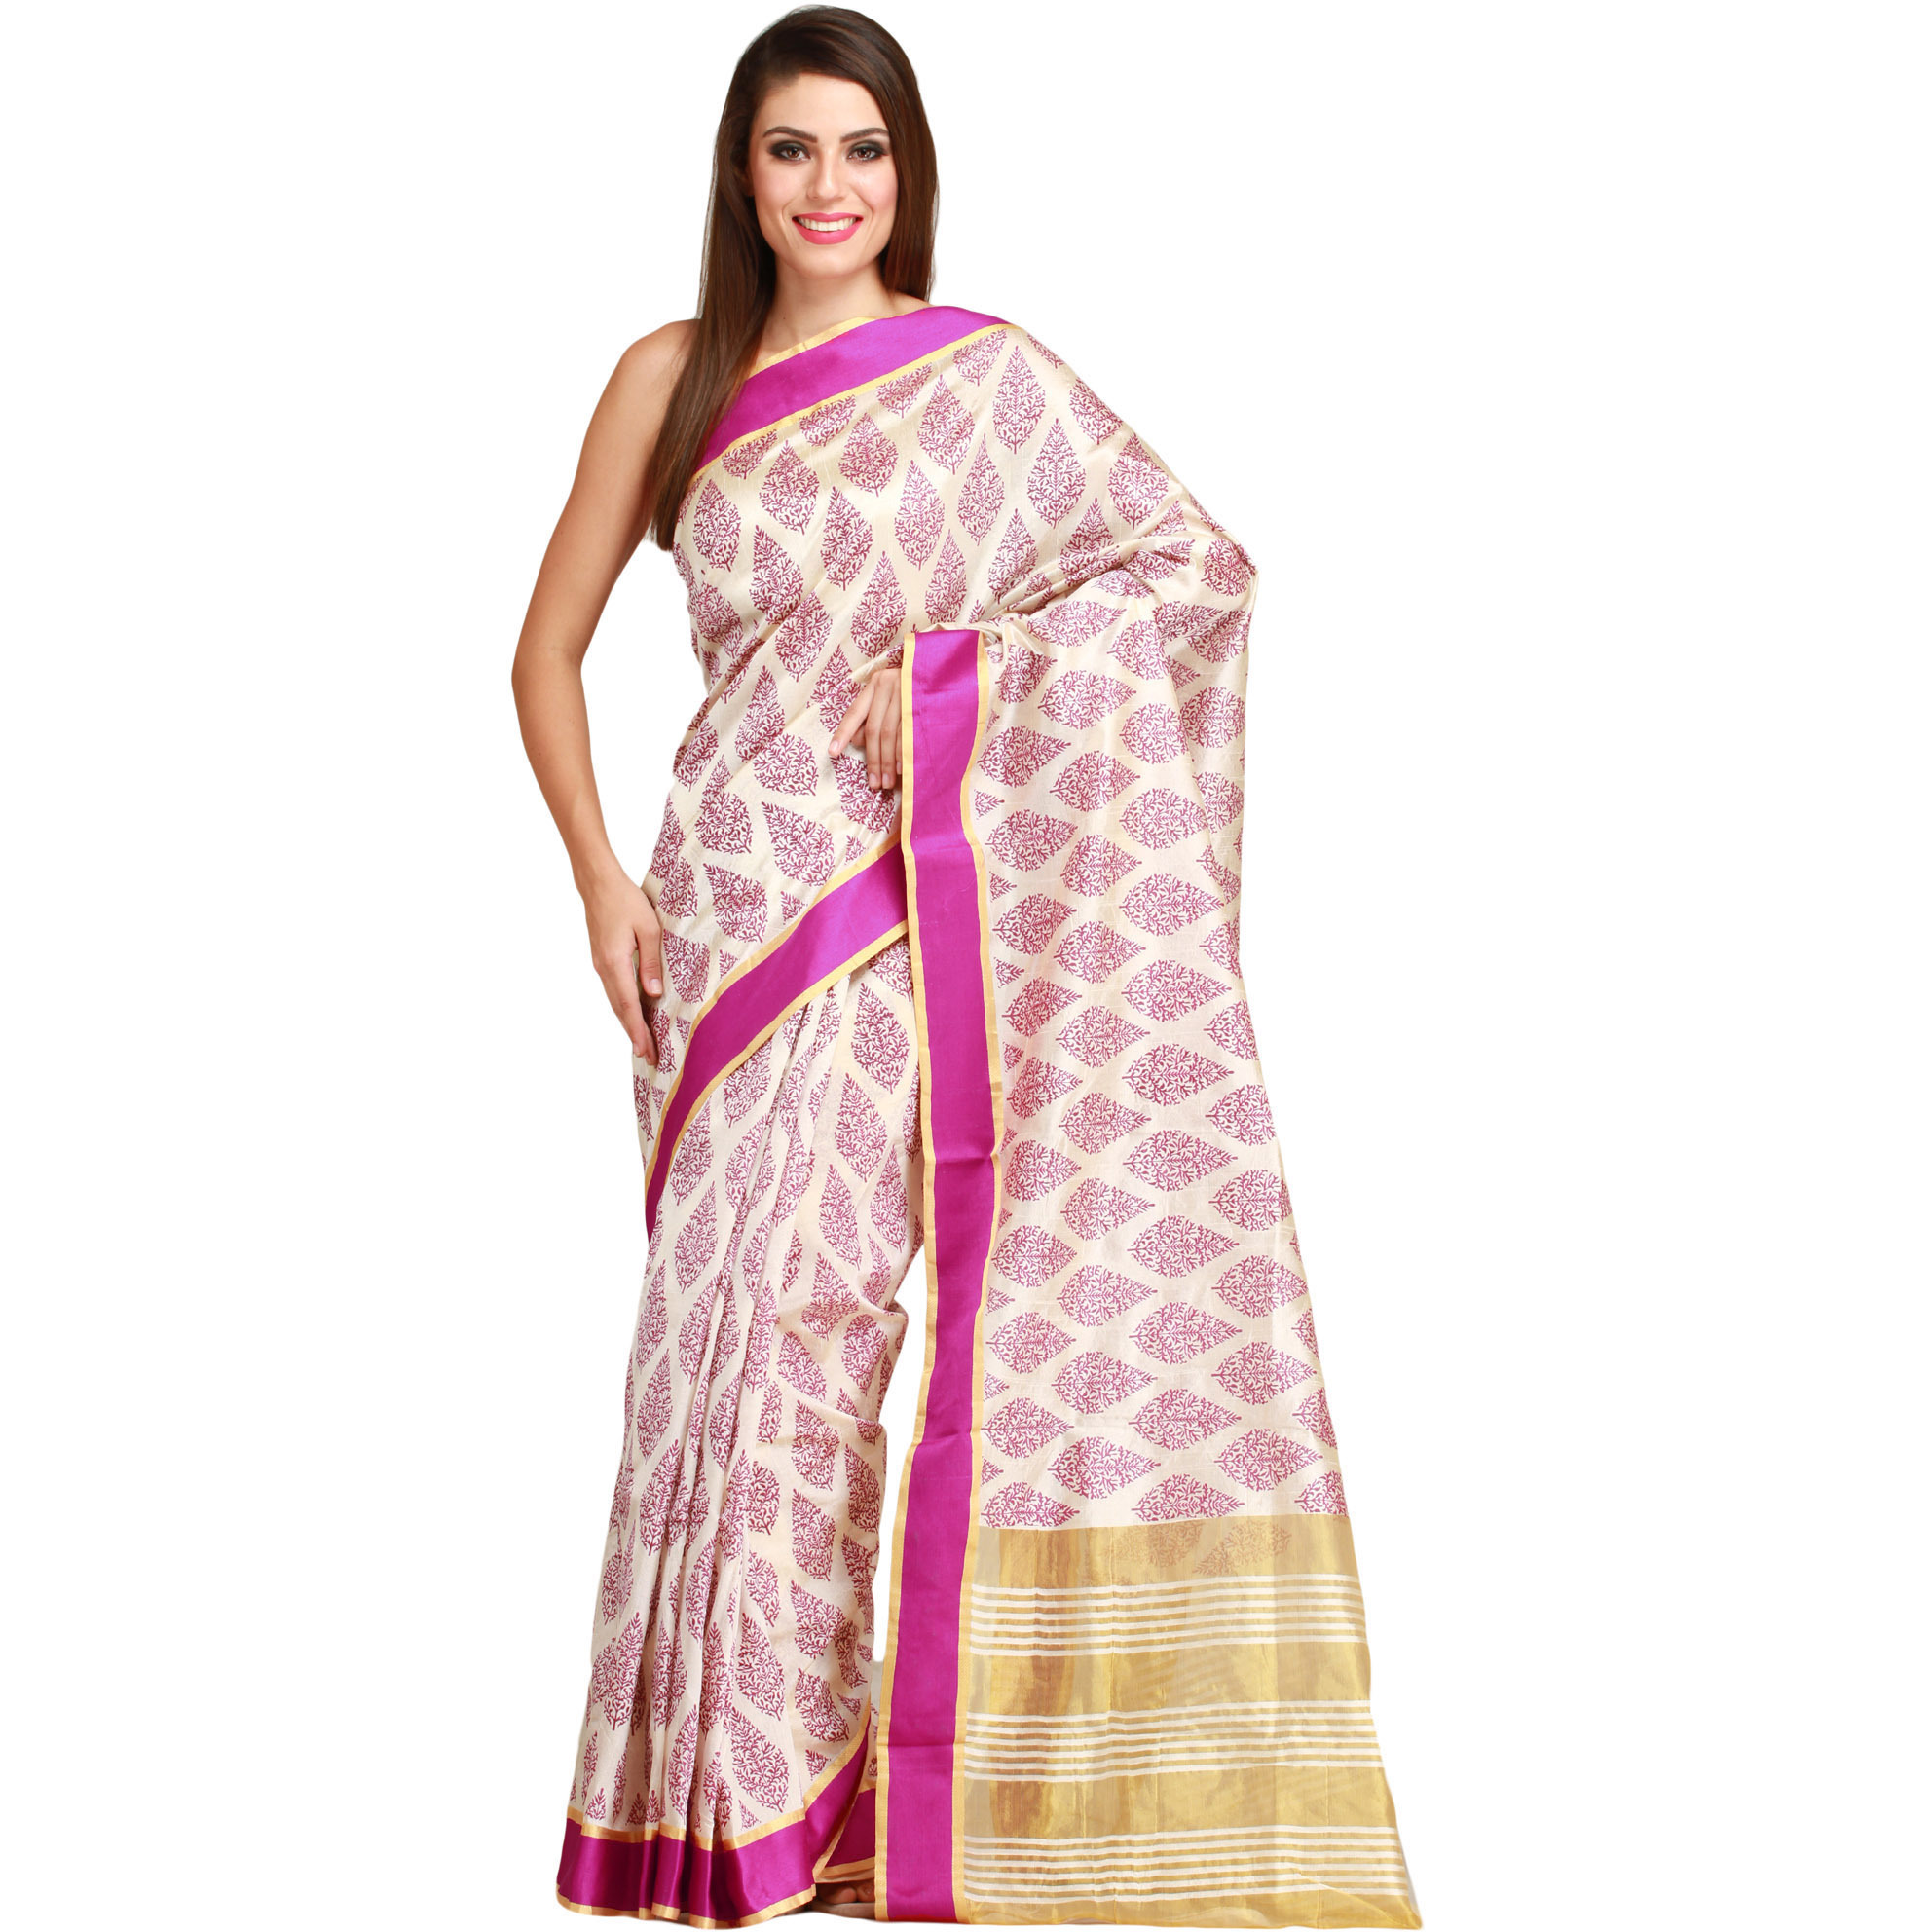 Cream and Pink Sari from Bengal with Printed Leaves and Striped Aanchal